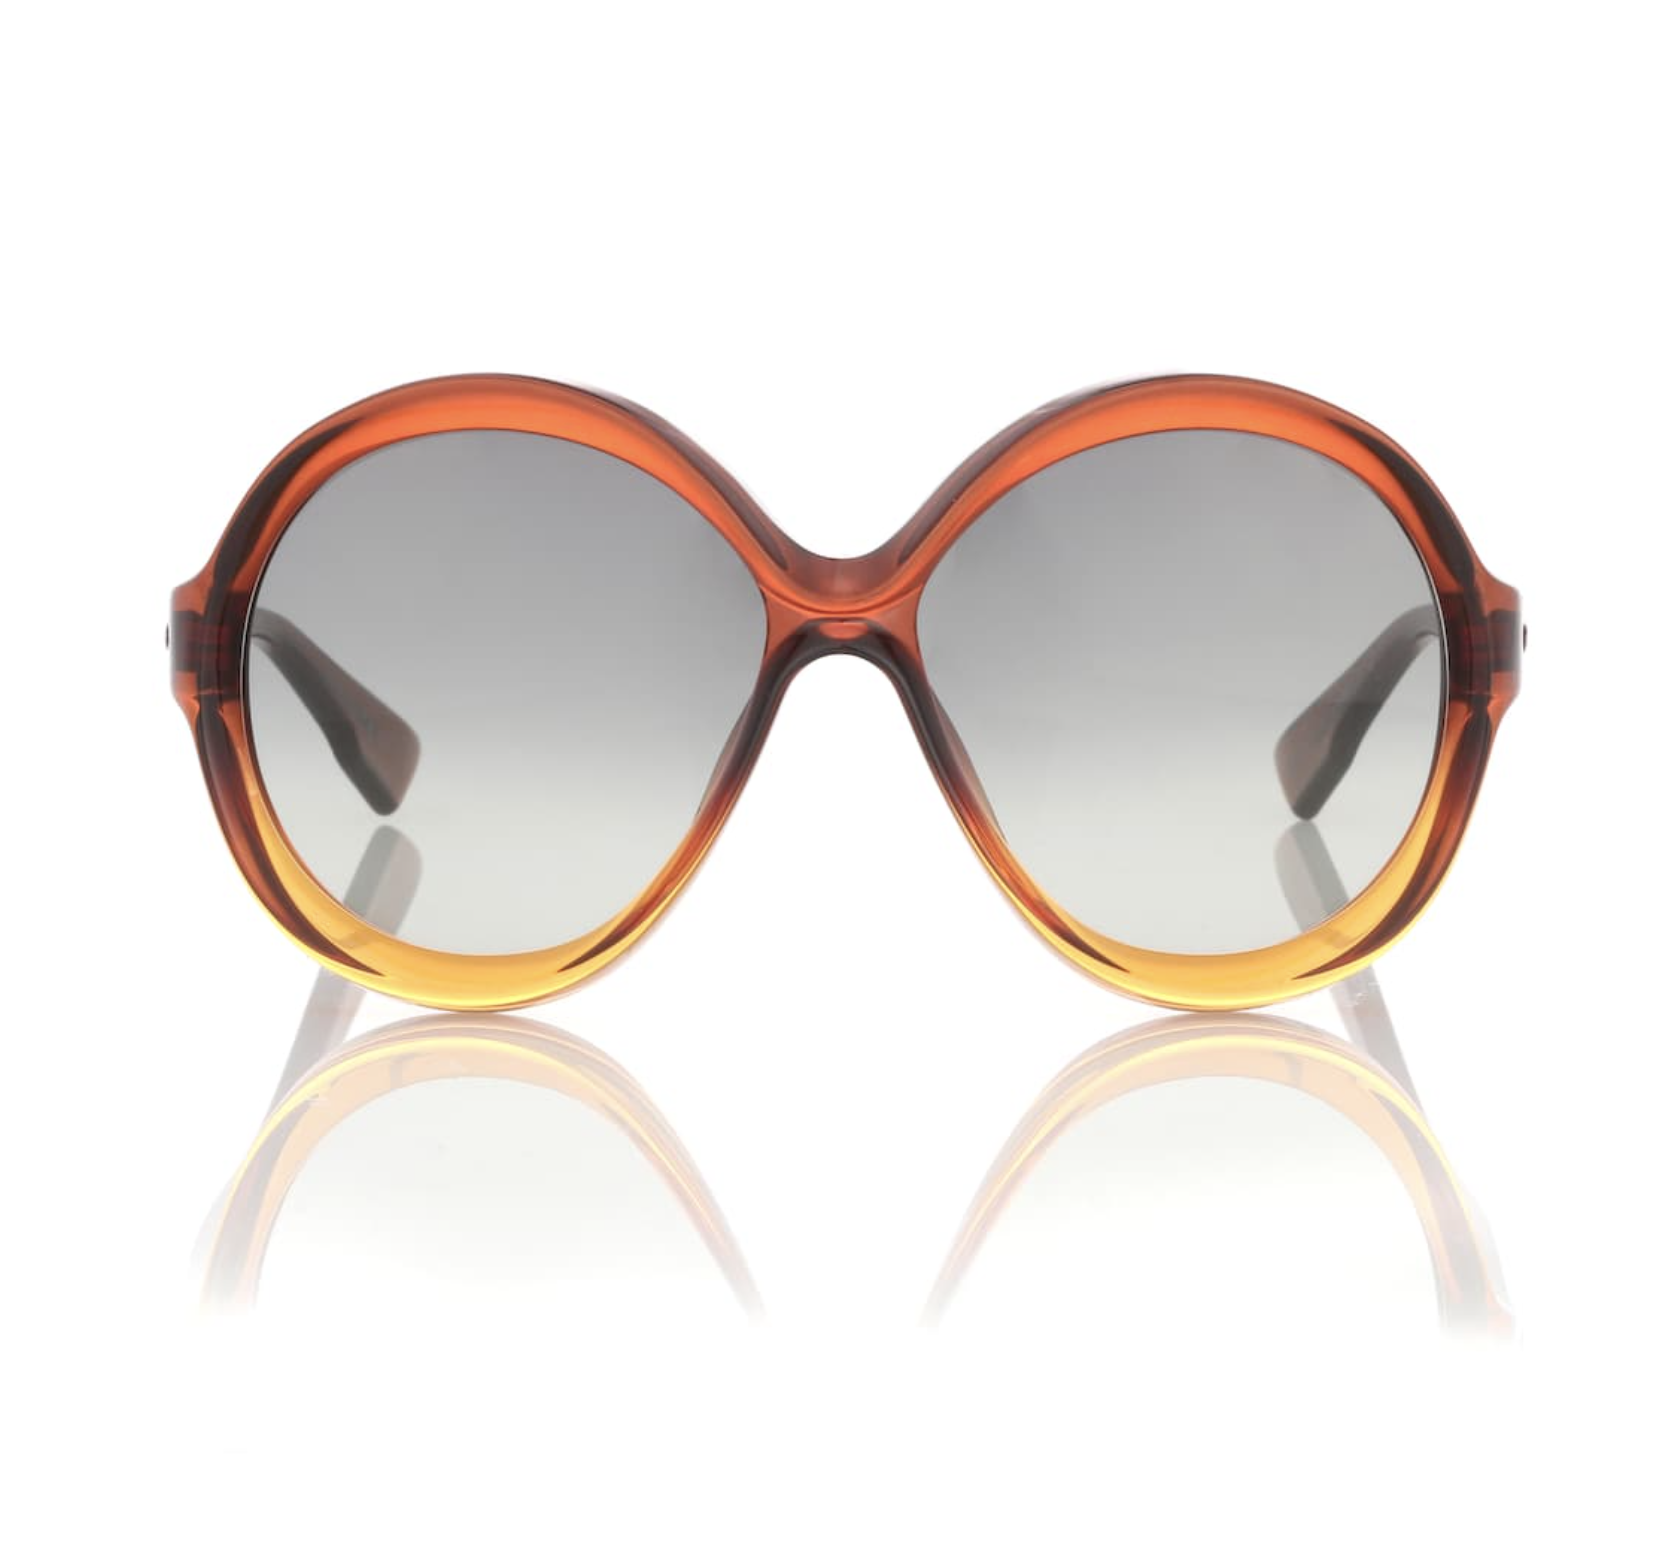 DIOR SUNGLASSES DiorBianca oversized sunglasses